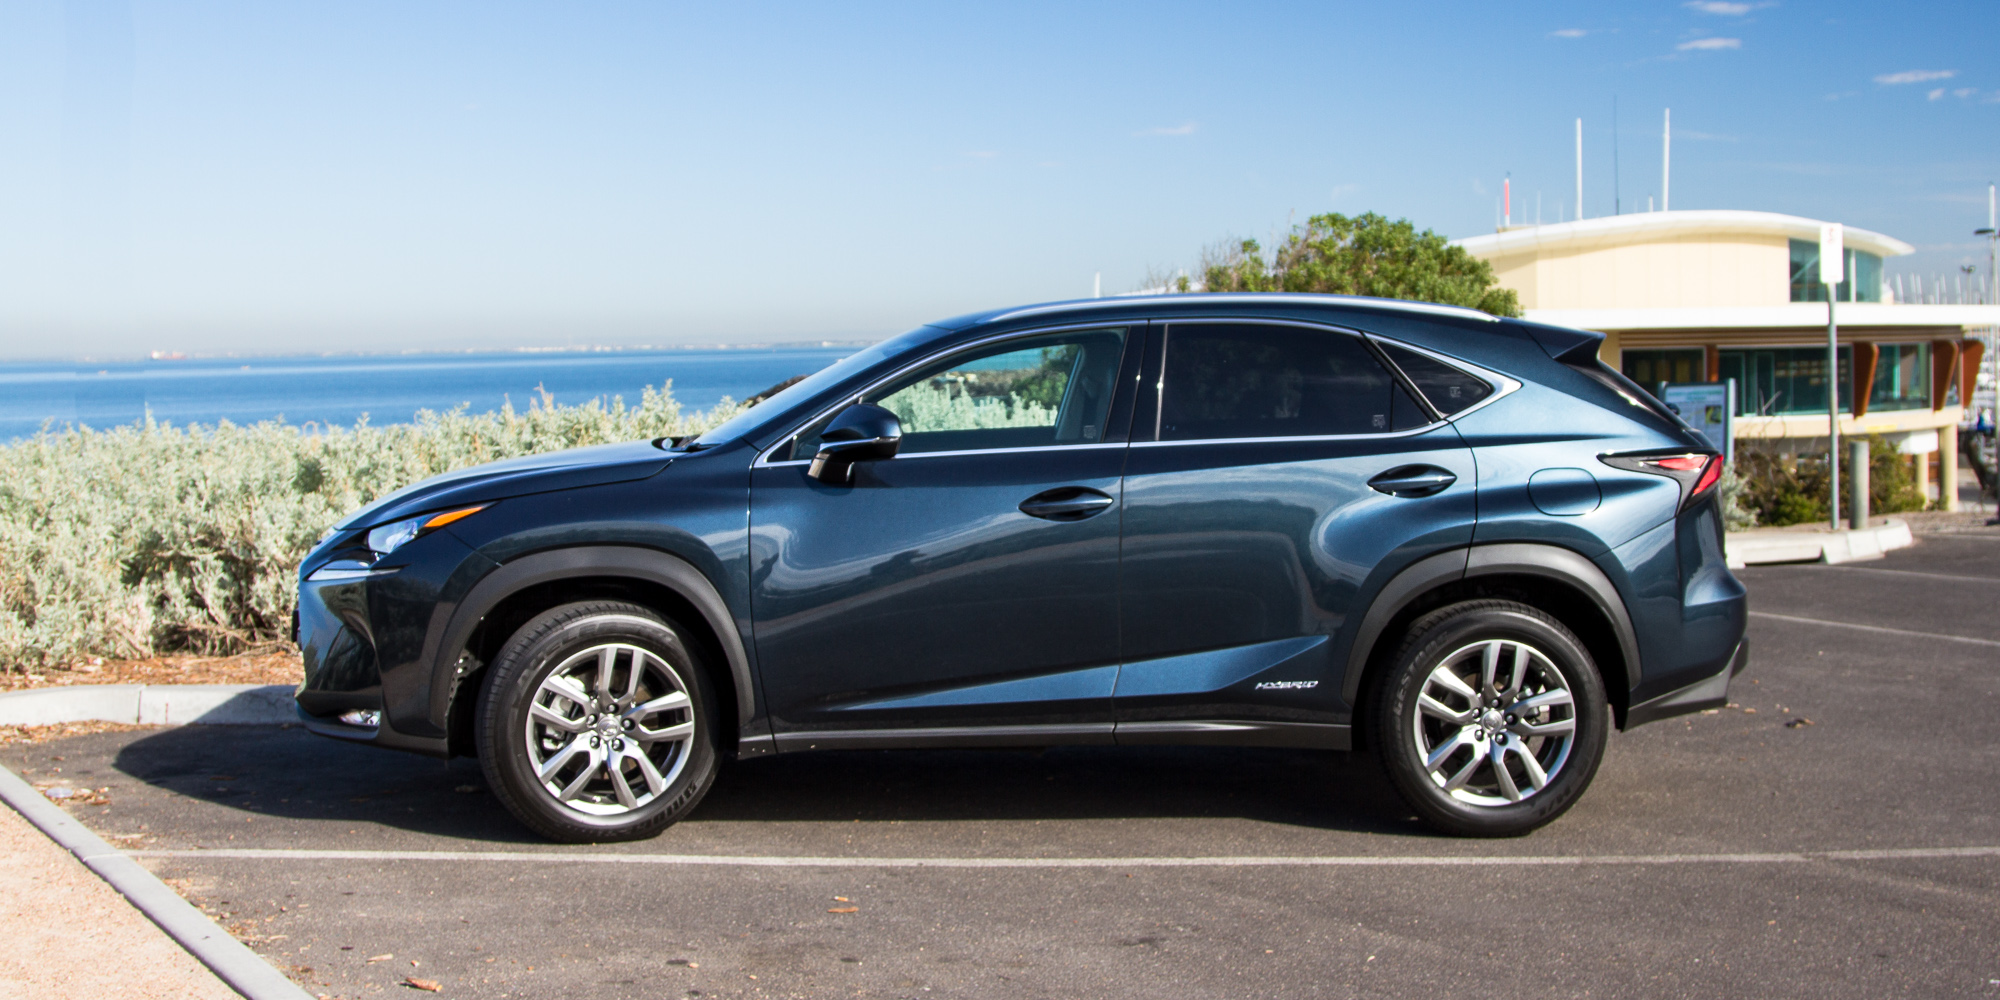 Lexus Hybrid Suv >> 2015 Lexus NX300h Luxury 2WD Review - photos | CarAdvice